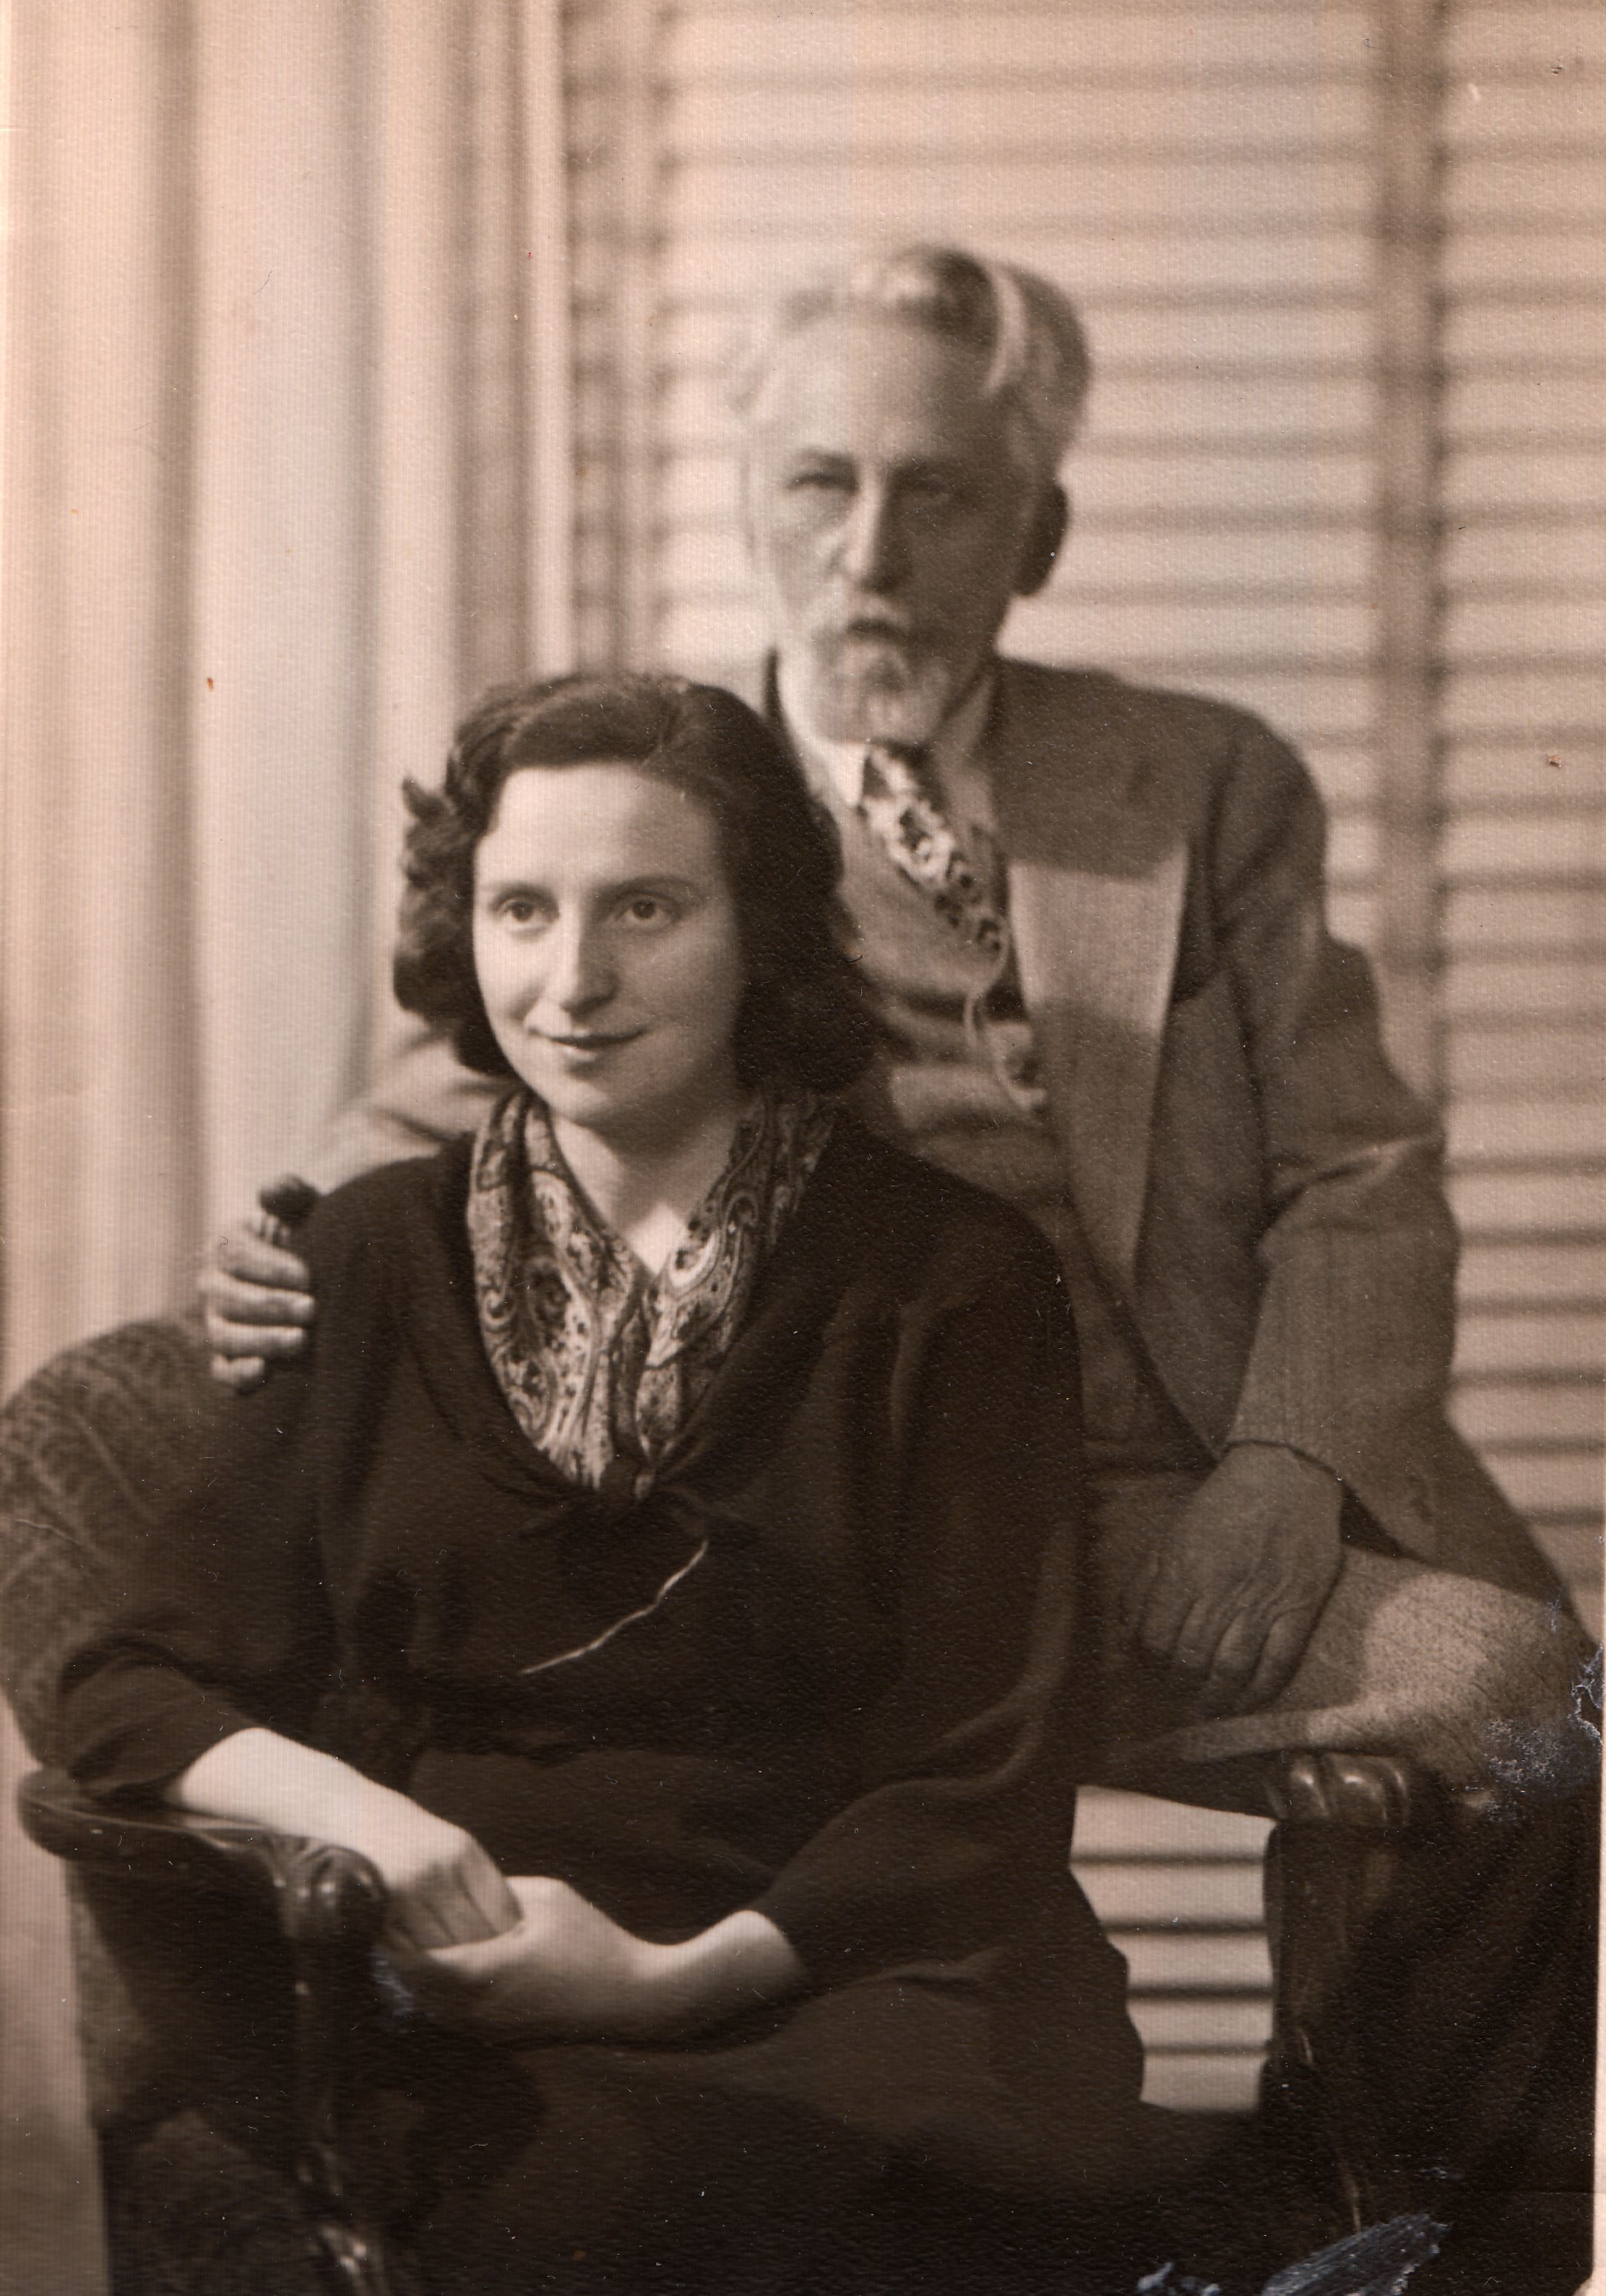 <p>Chava and Harry Hershman, her Canadian publisher, Montreal, 1950, via&nbsp;chavarosenfarb.com</p>